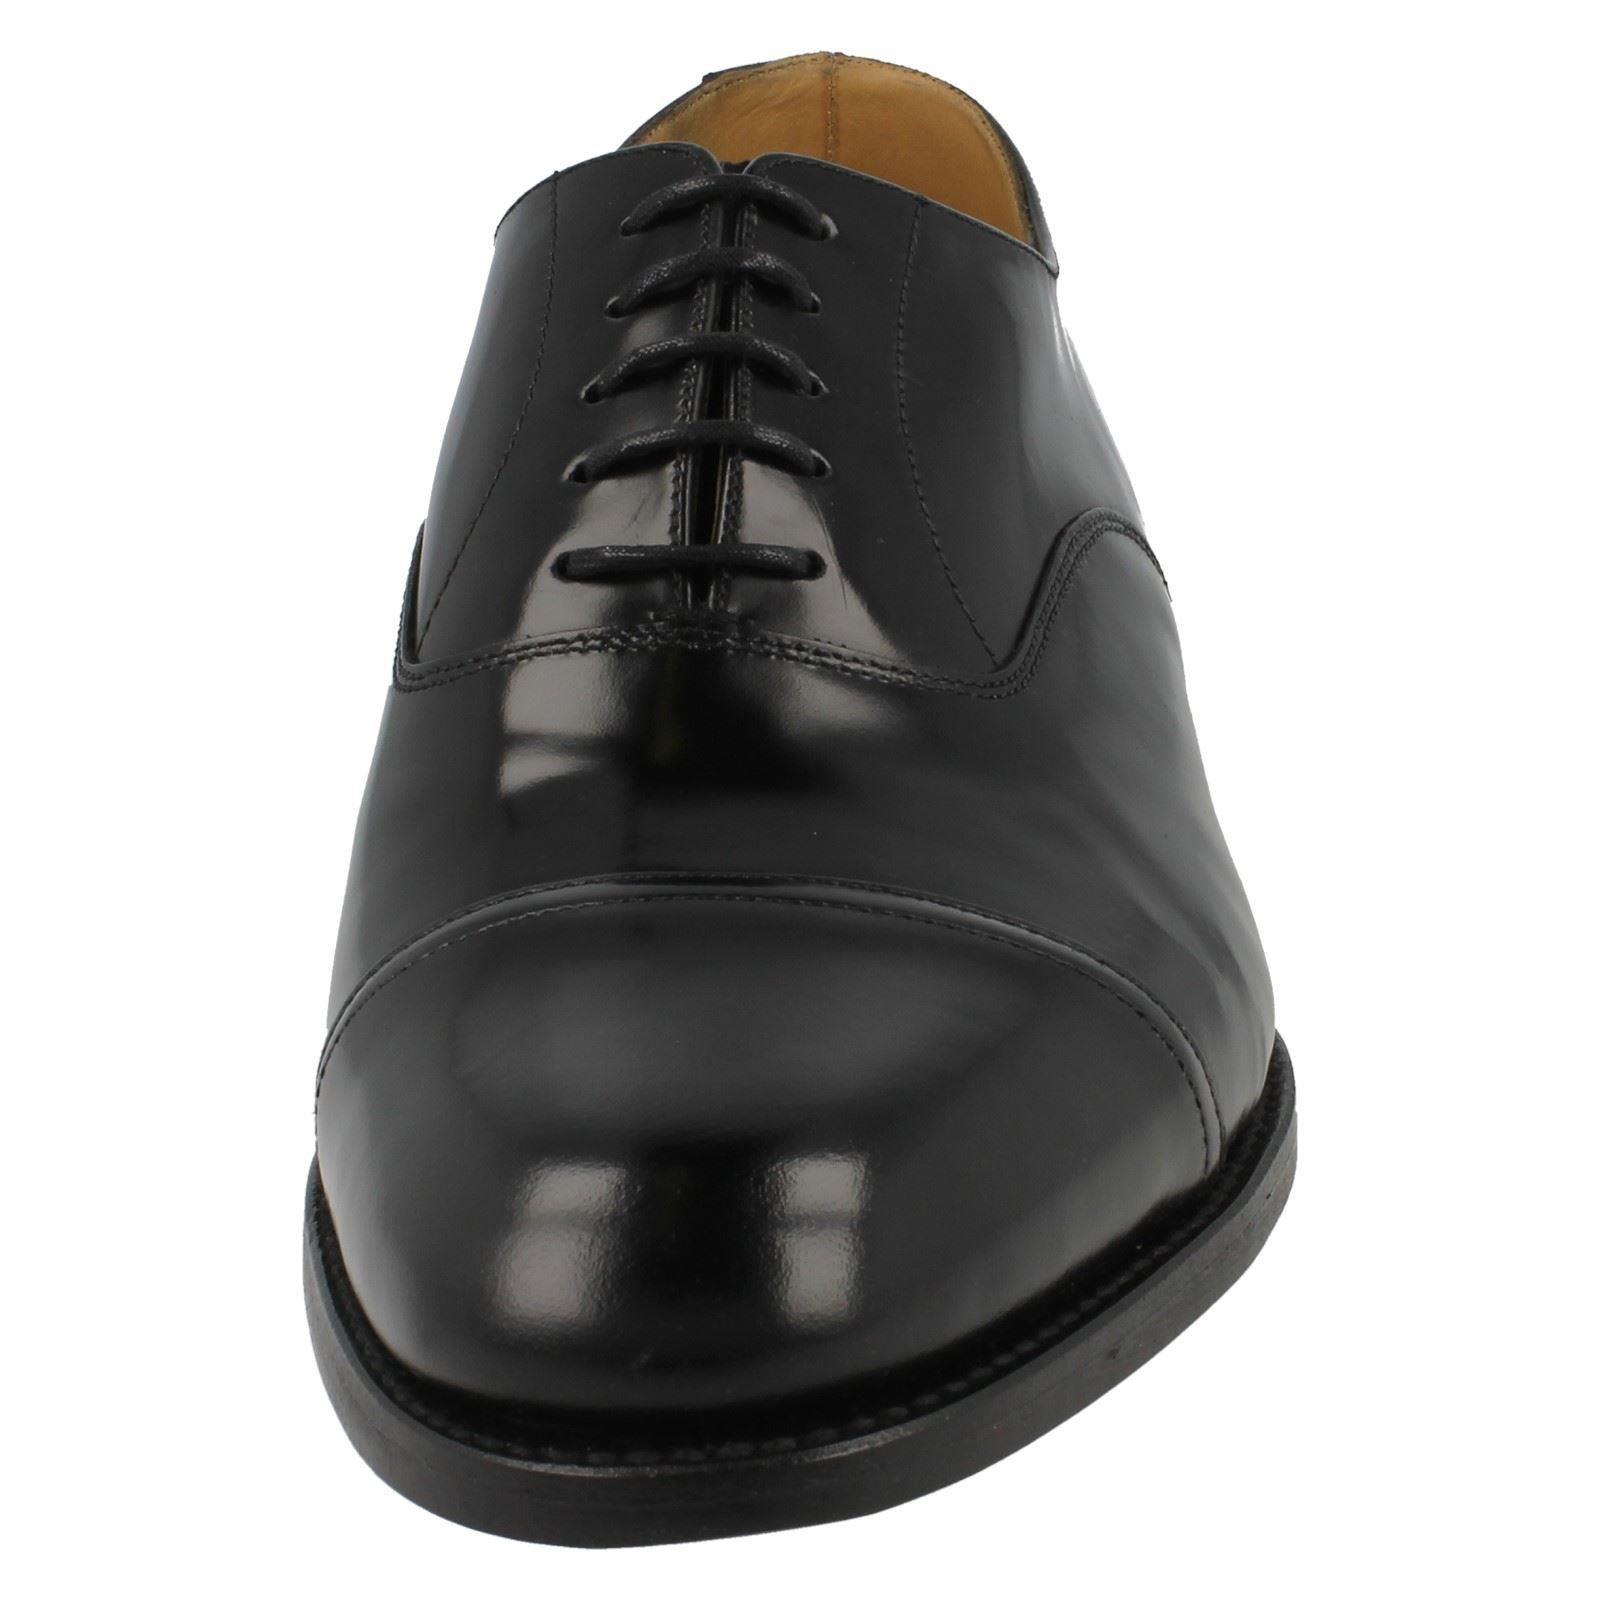 Shoes Oxford Elland Lace Cap Mens Loake Style Classic Black Leather Up Toe Smart C7PZq8